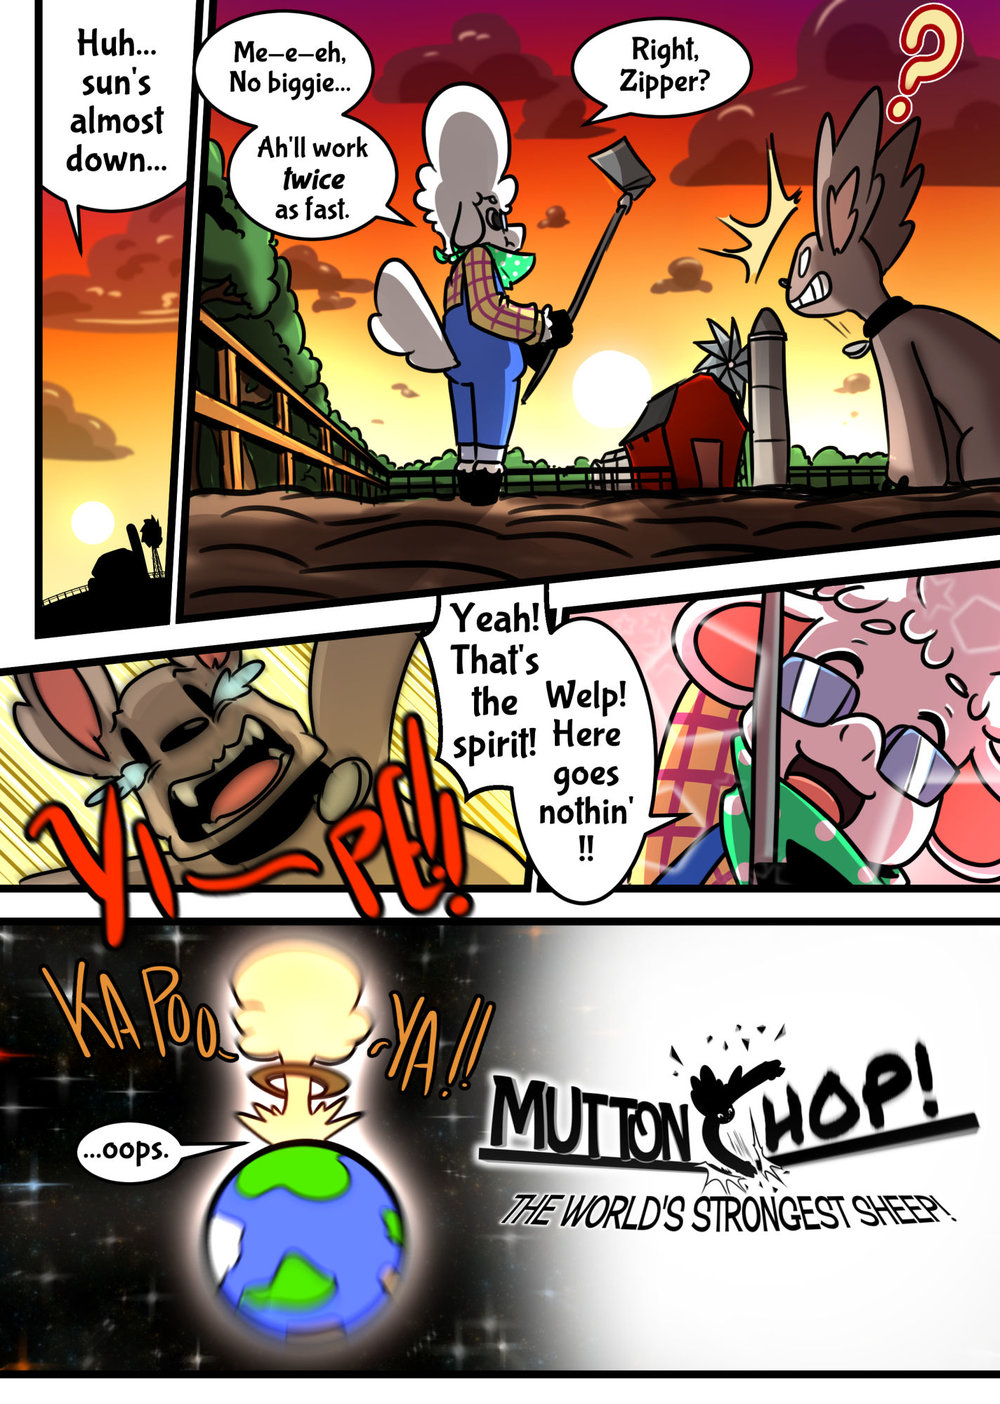 Mutton Chop - Promo Comic_1.jpg